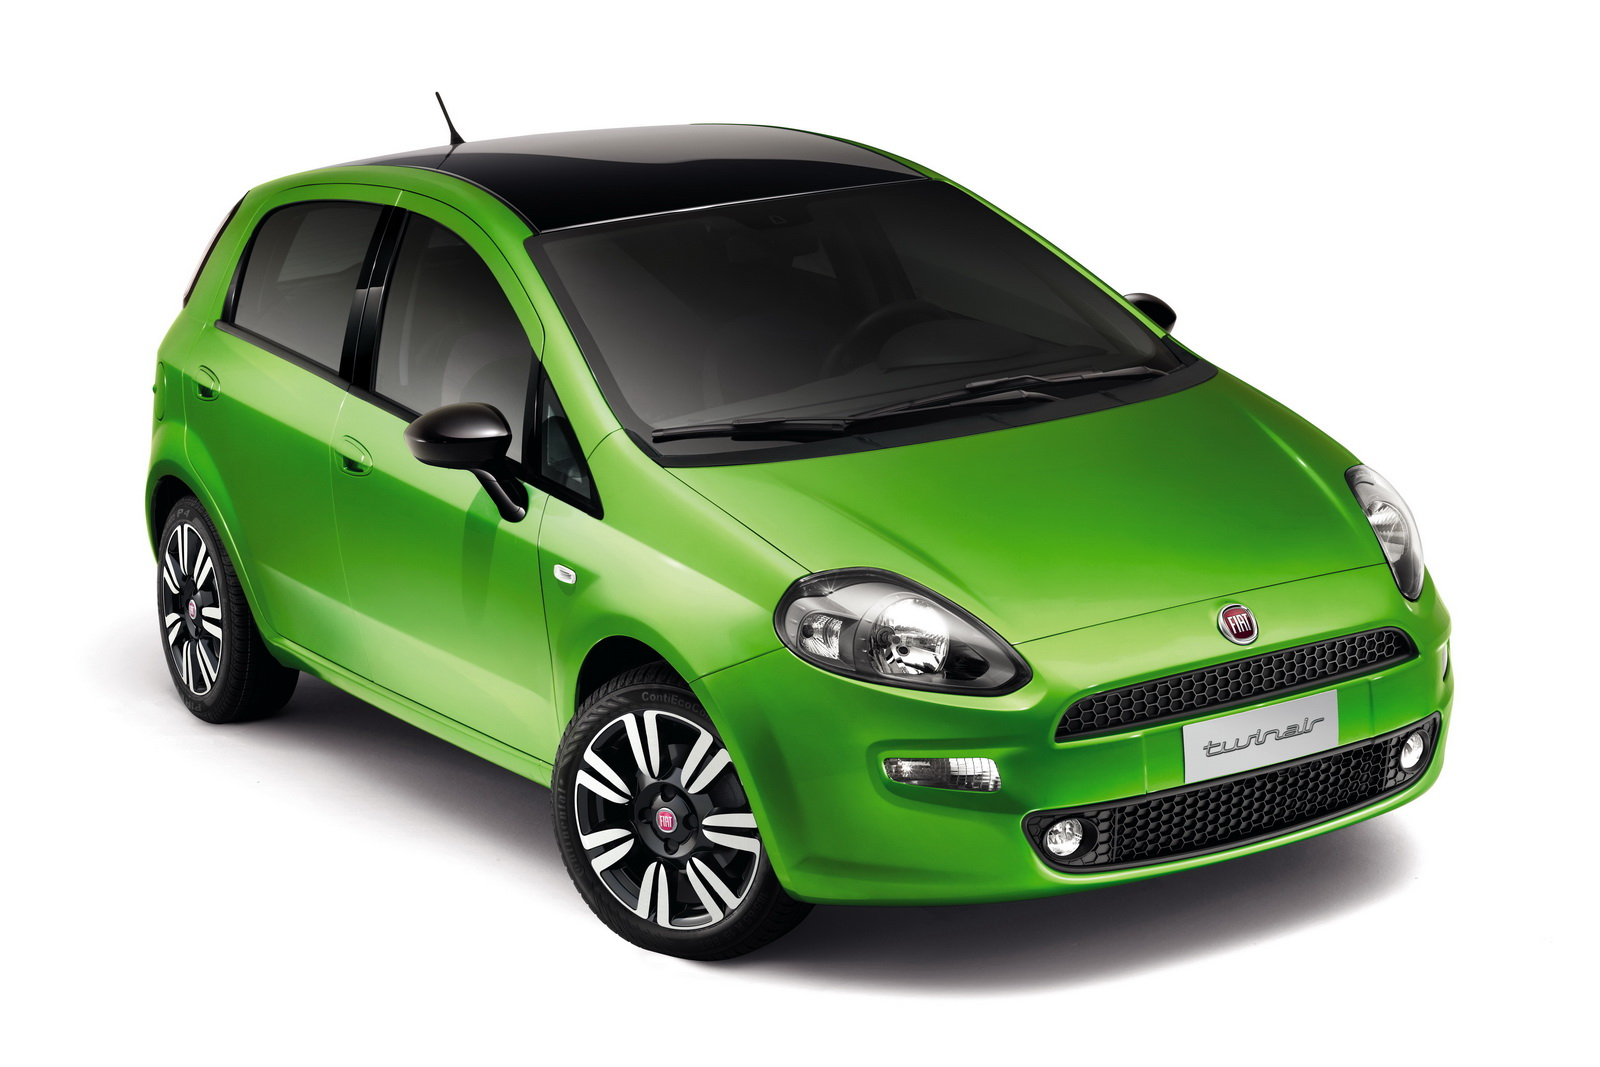 2012 Fiat Punto Hatchback 5-door